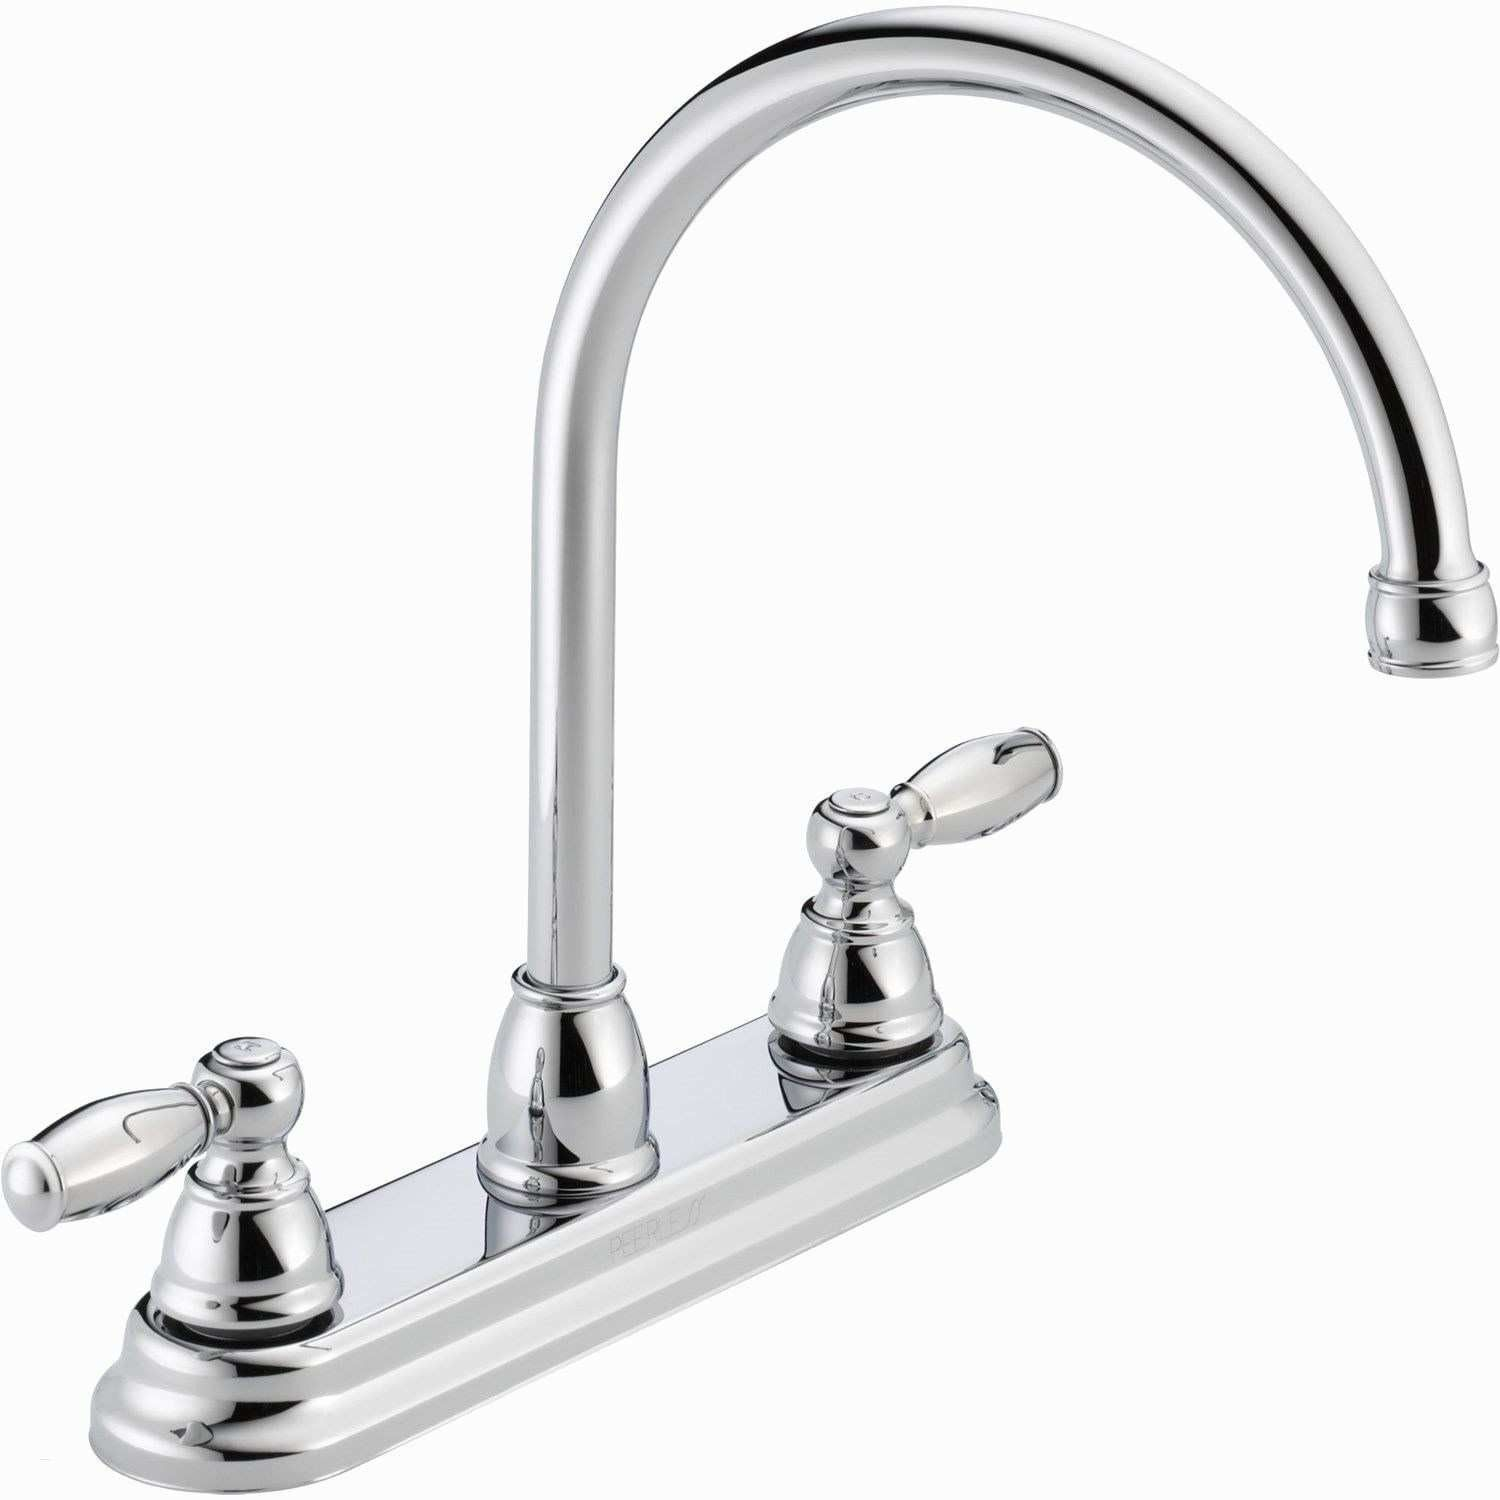 225 & 13 Delta Kitchen Faucet Cartridge 25 Lovely Delta Bathroom Faucet ...